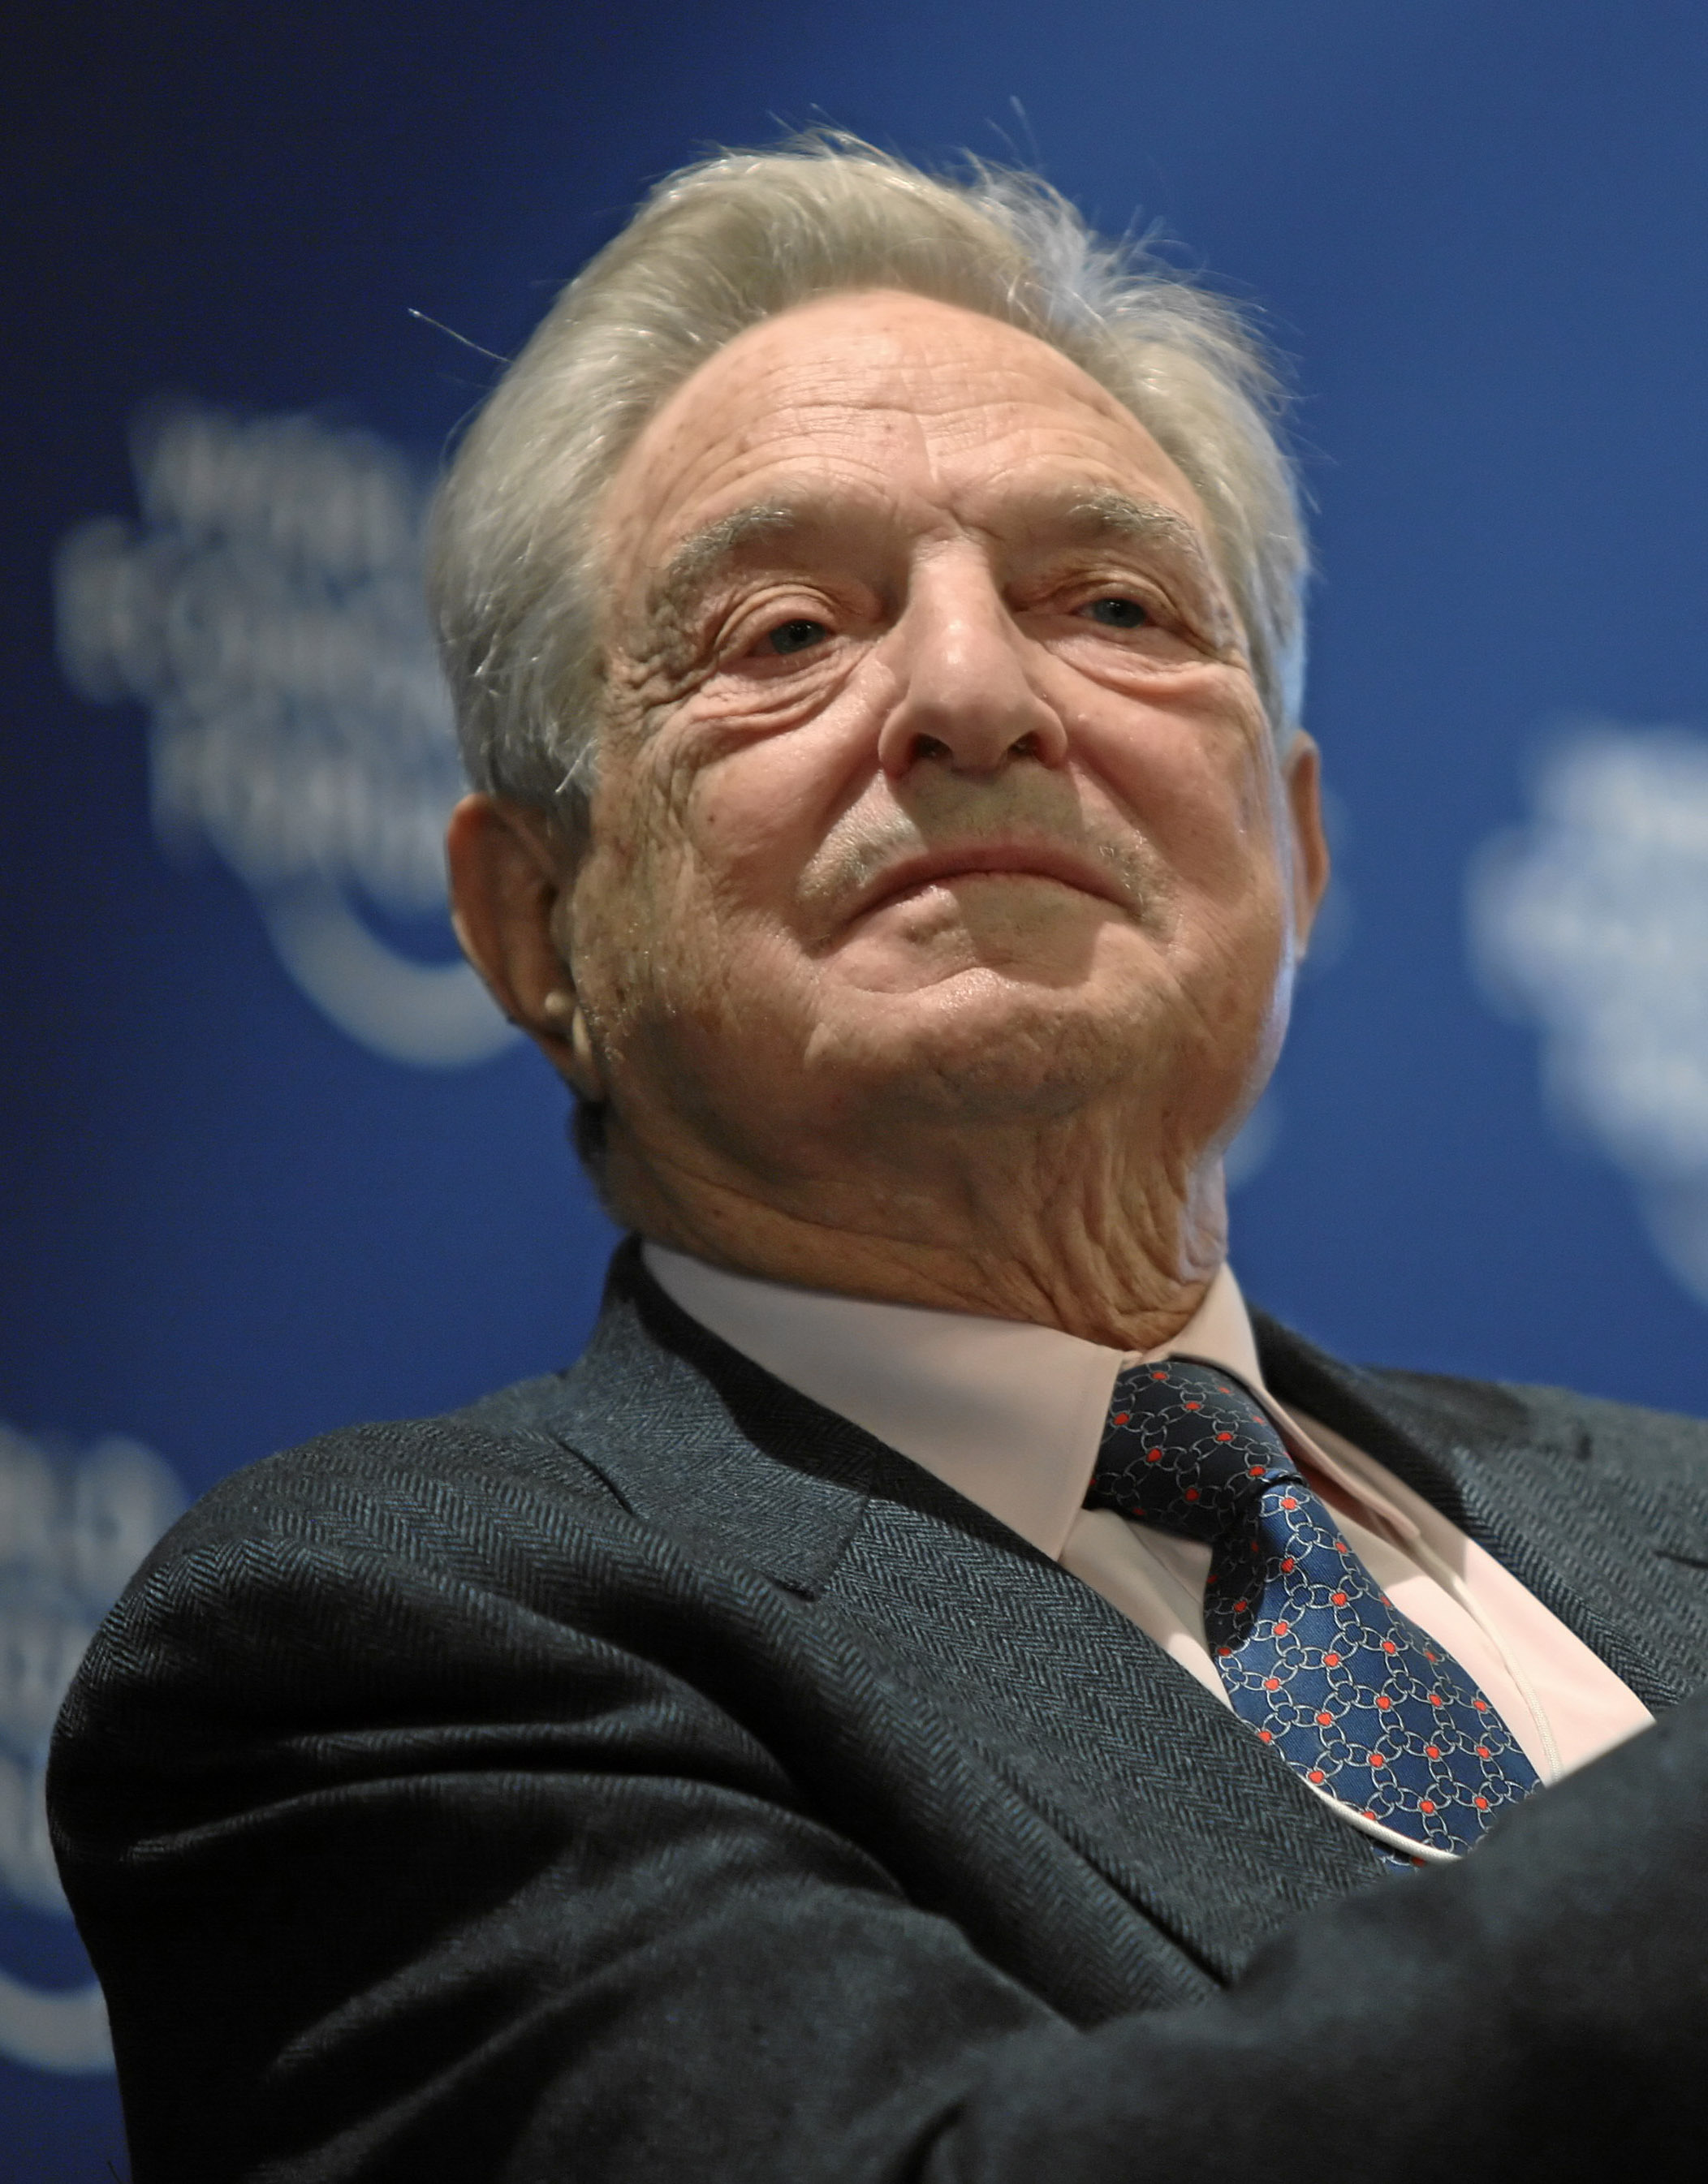 http://upload.wikimedia.org/wikipedia/commons/3/32/George_Soros_-_World_Economic_Forum_Annual_Meeting_Davos_2010.jpg